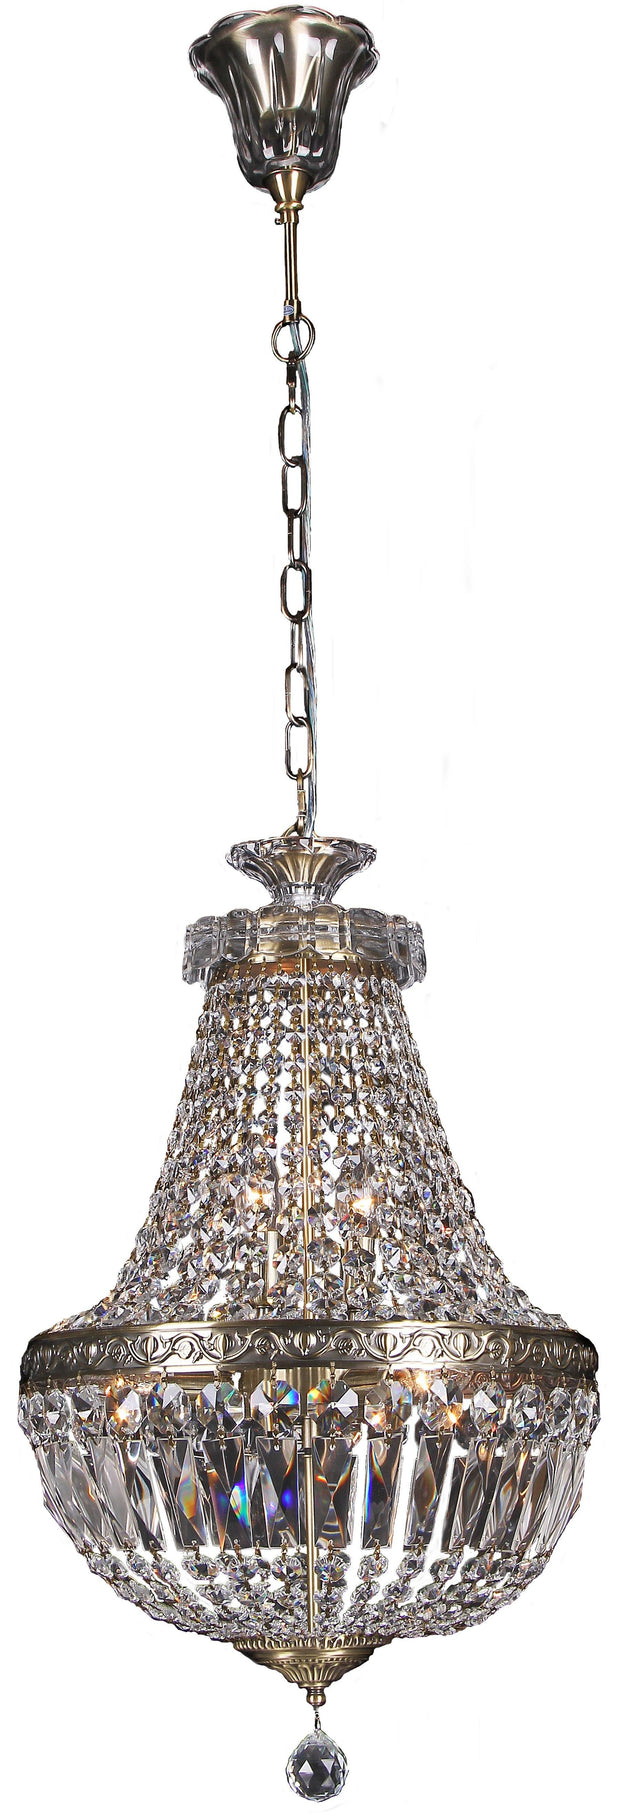 Le Pavillon 5 Light Pendant - Large - Lighting Superstore